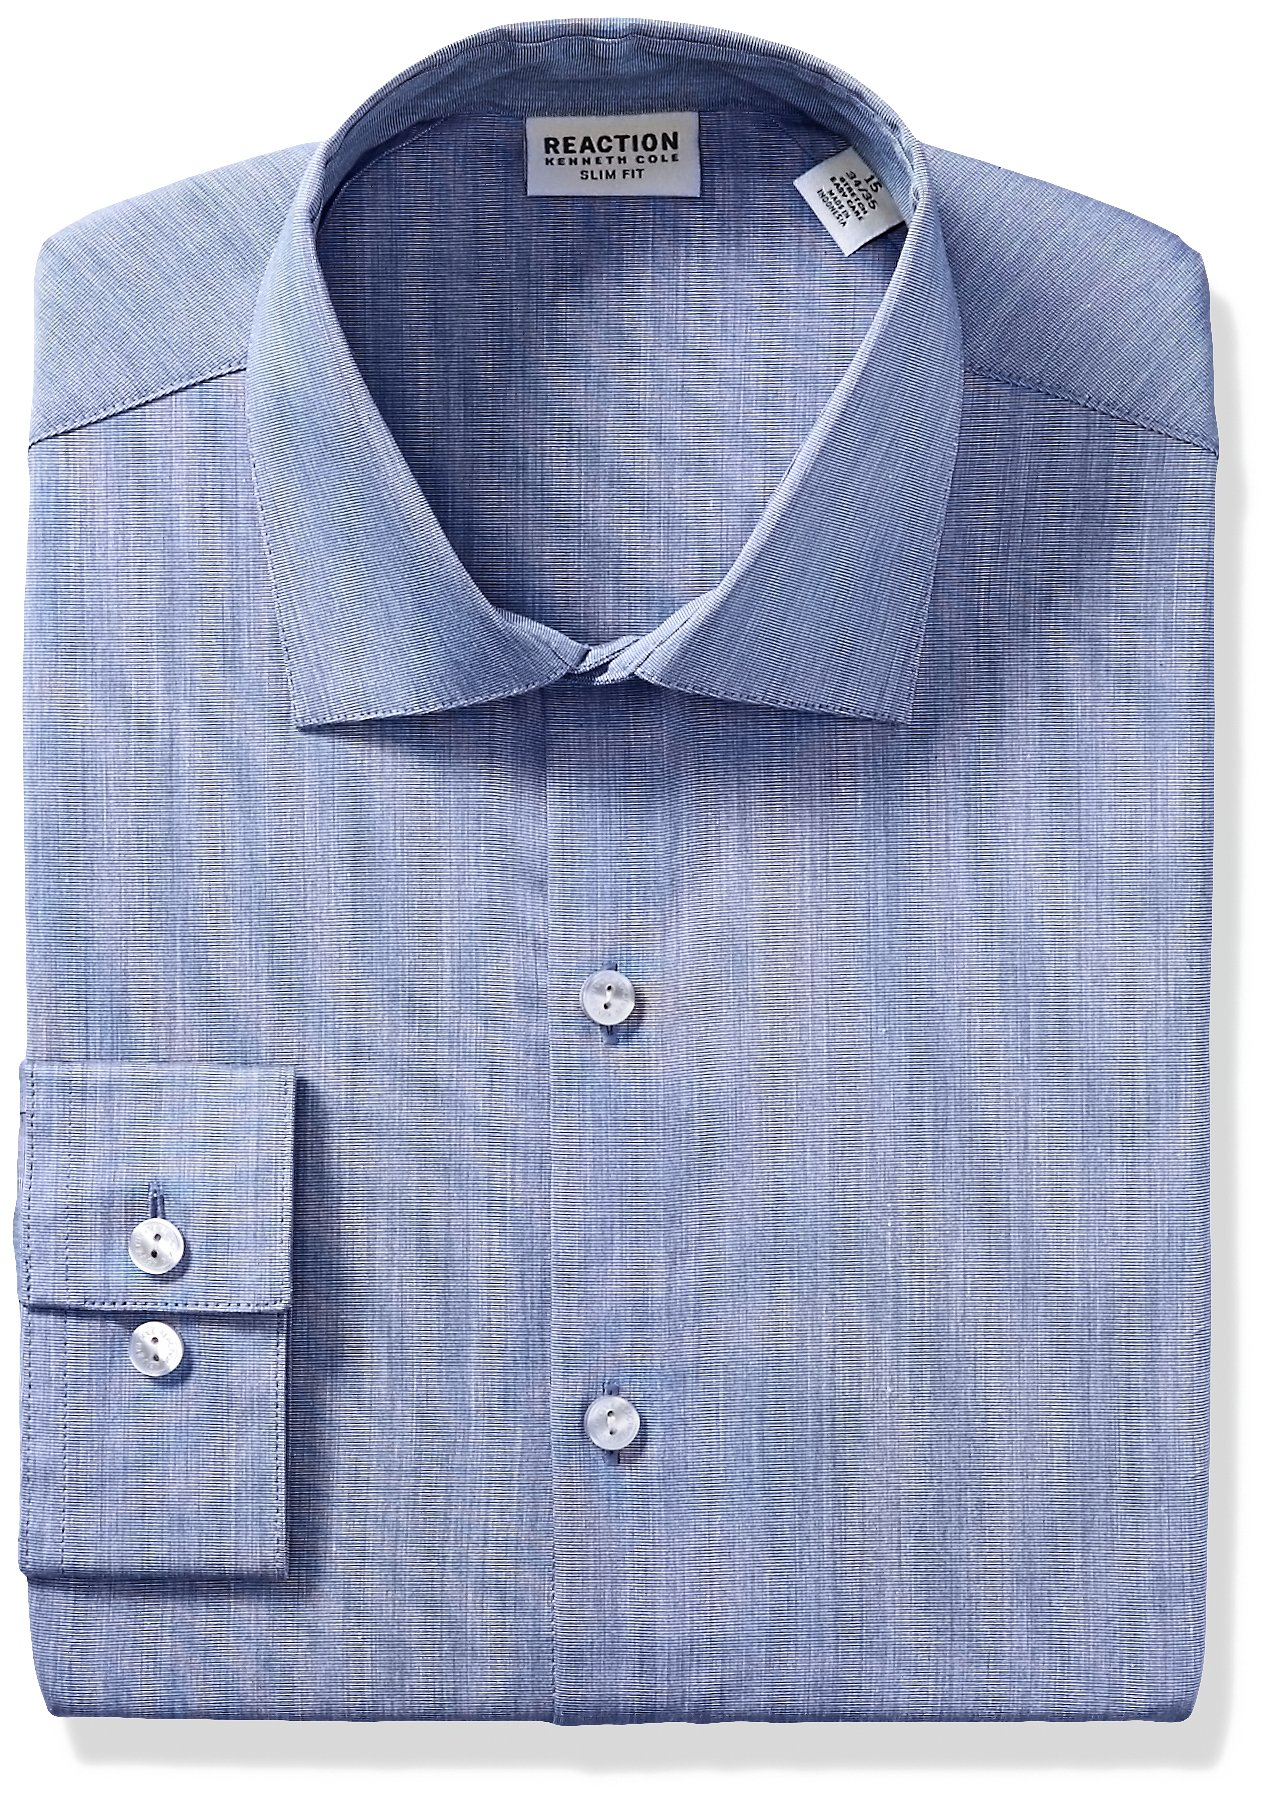 Kenneth Cole Reaction Men's Technicole Slim Fit Stretch Solid Spread Collar Dress Shirt , Indigo, 17'' Neck 34''-35'' Sleeve by Kenneth Cole REACTION